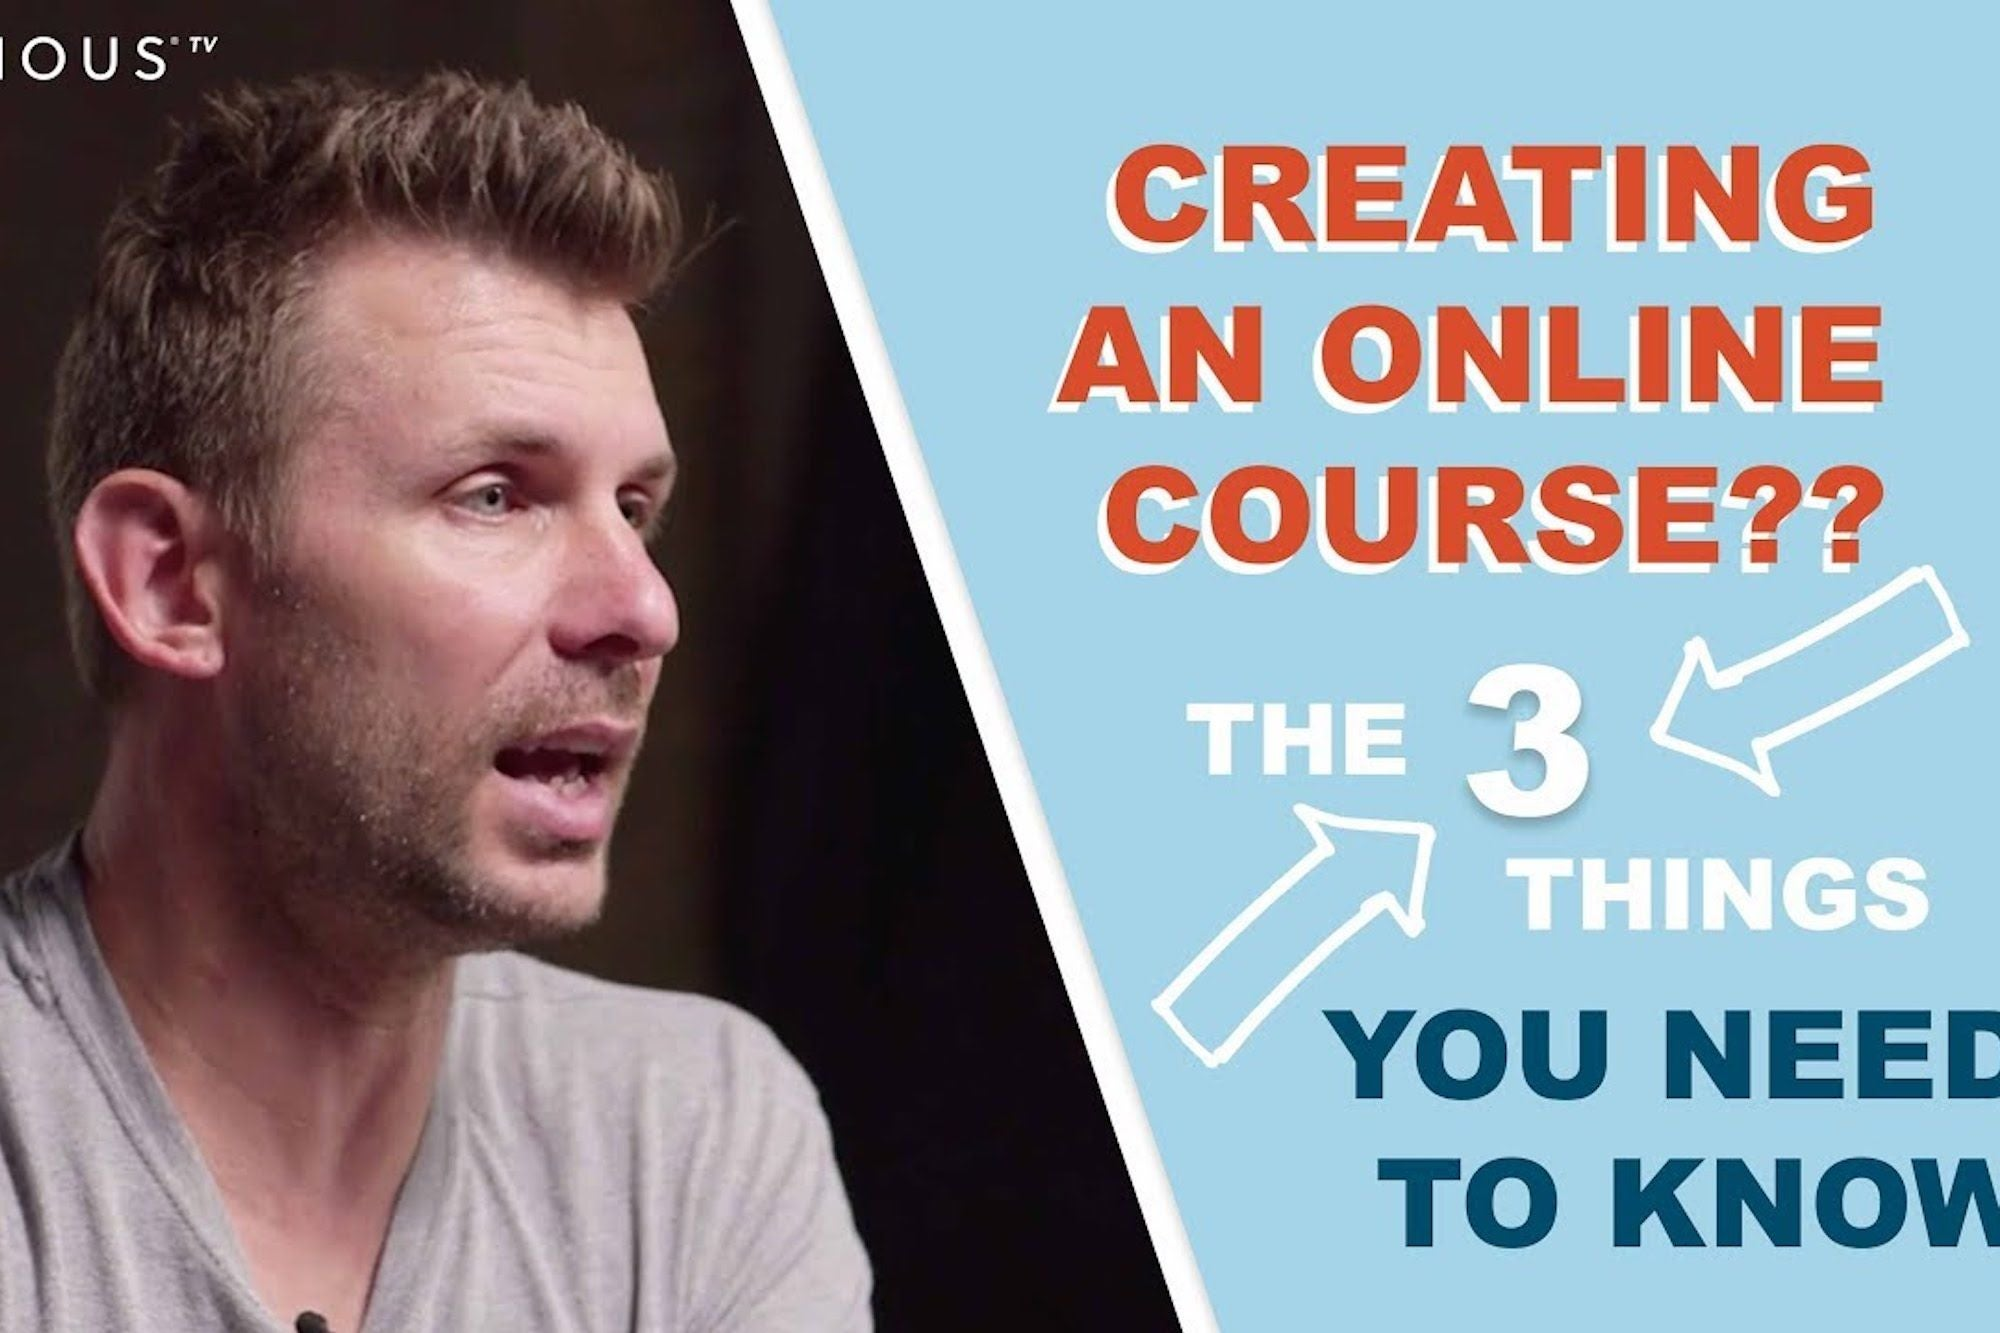 How to Create an Online Course for an Engaged Audience